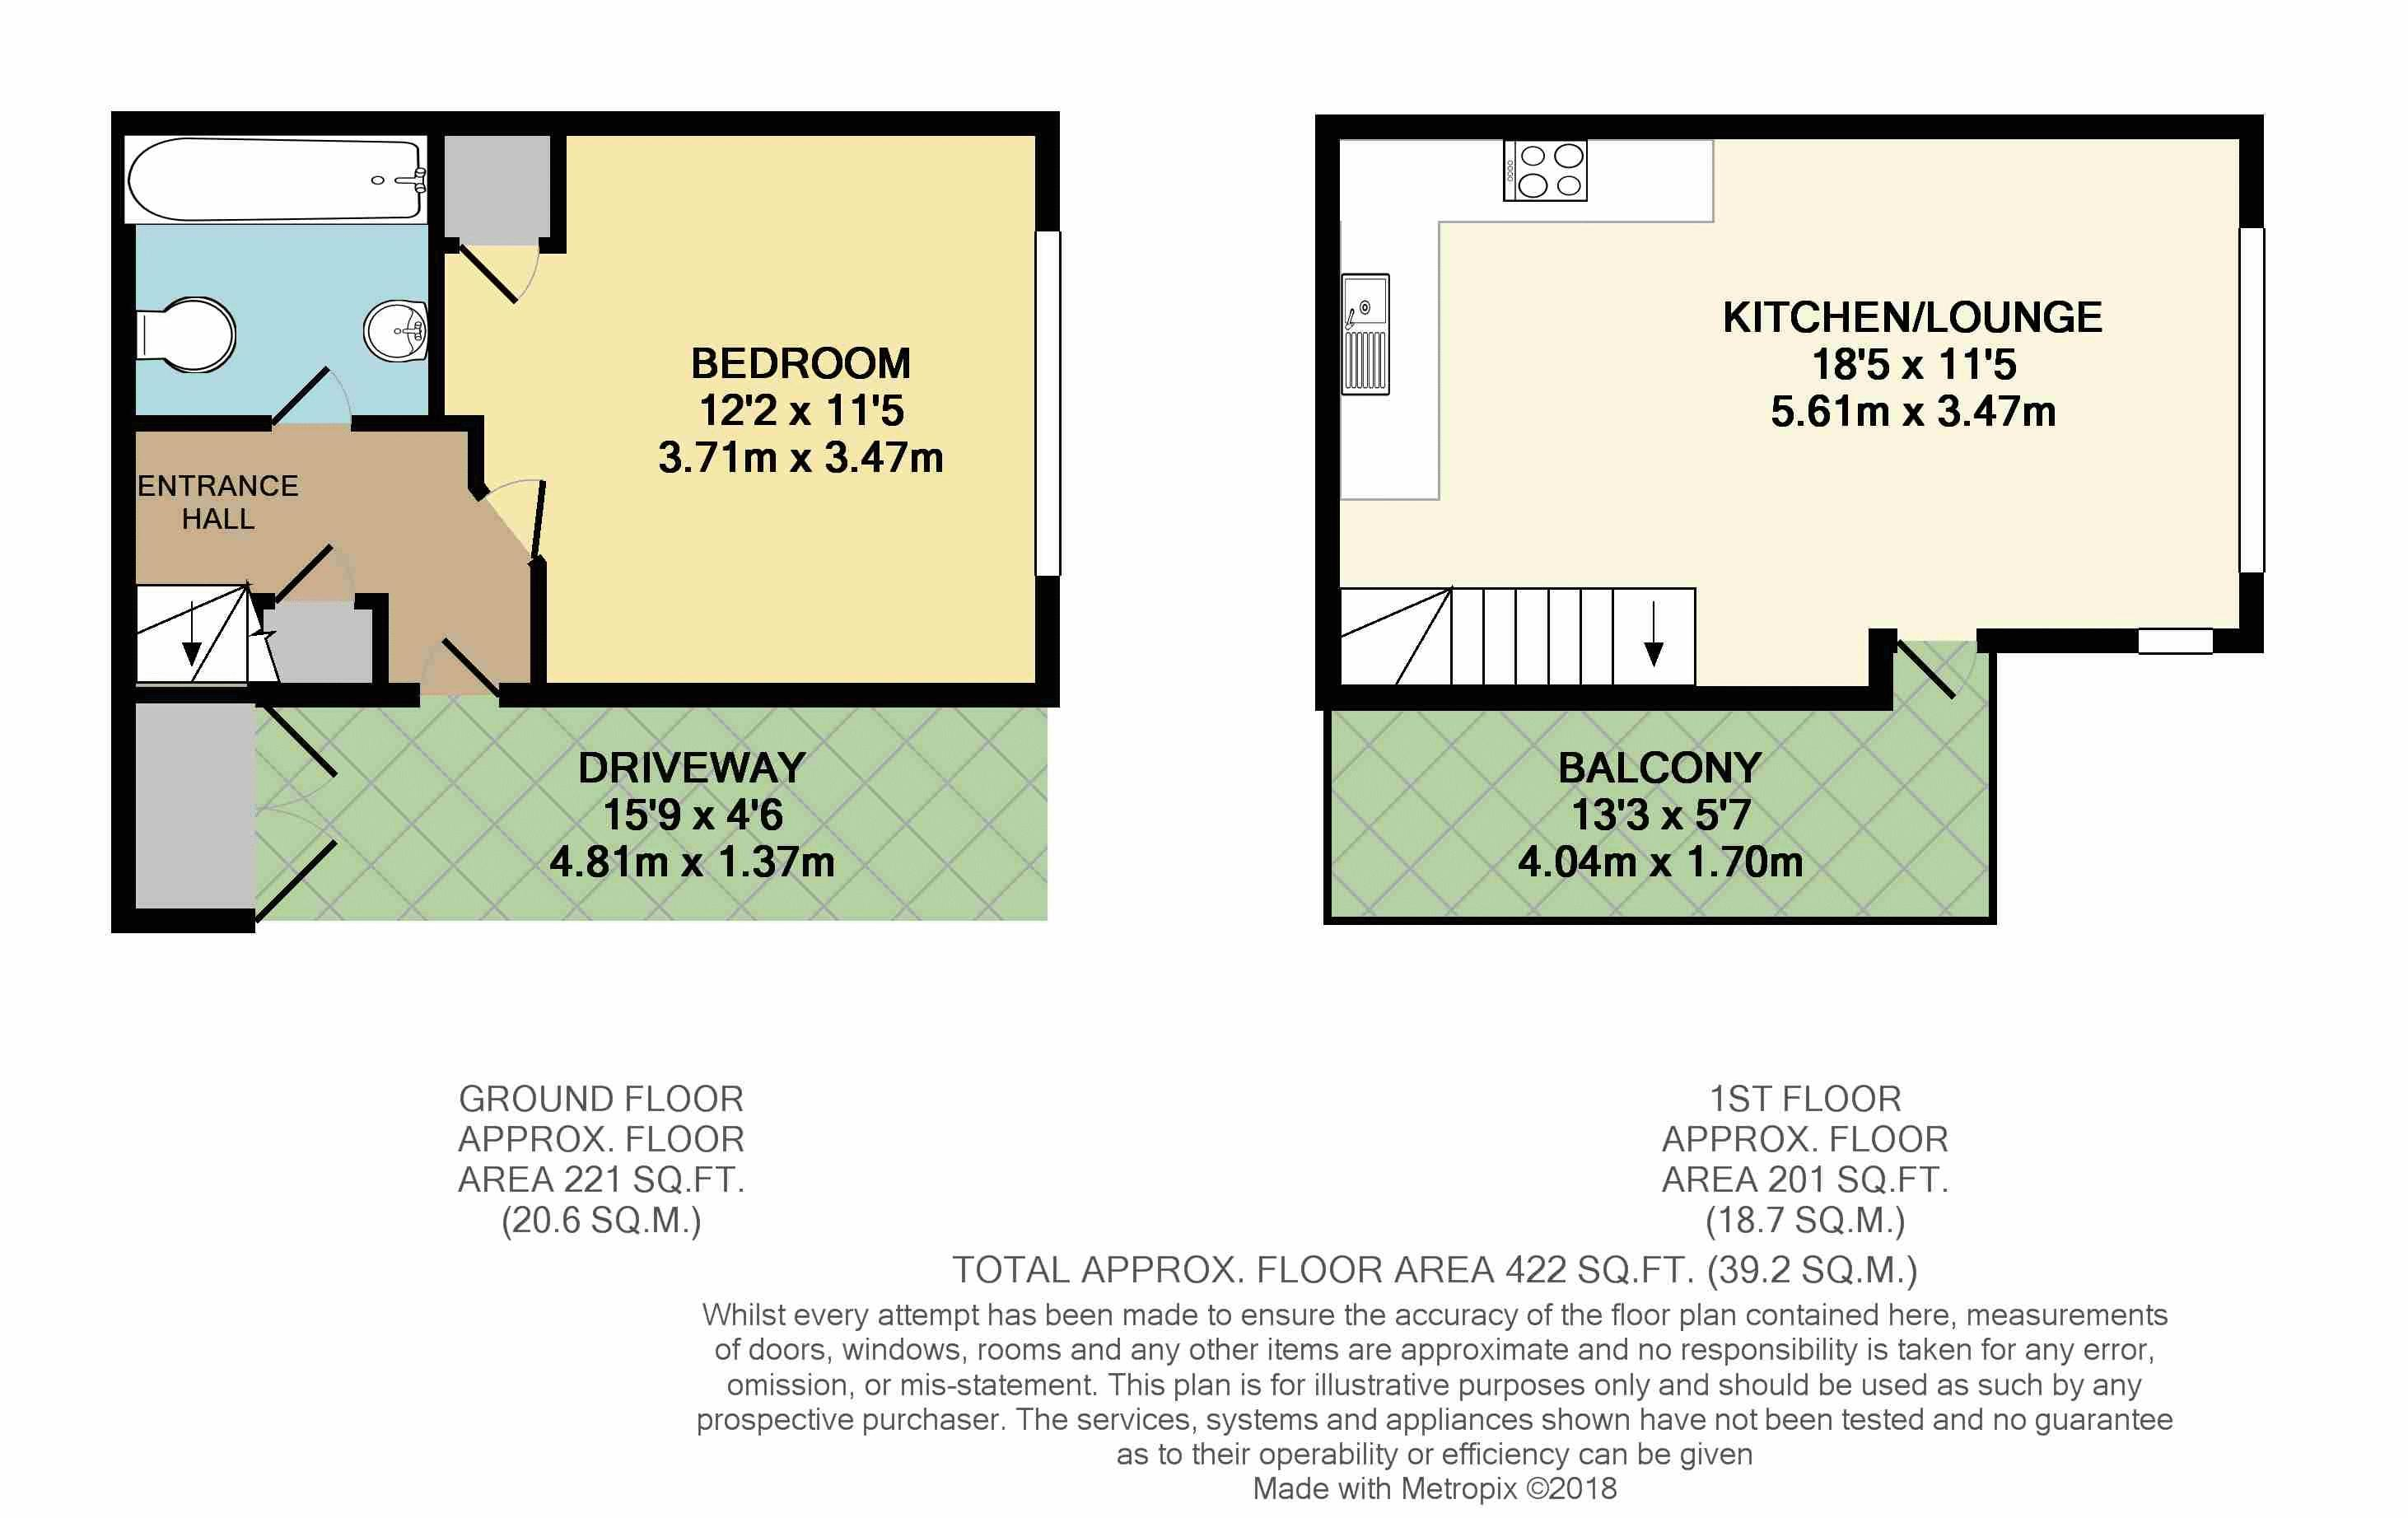 1 bedroom detached house for sale in milton keynes for How much is a bedroom worth in an appraisal